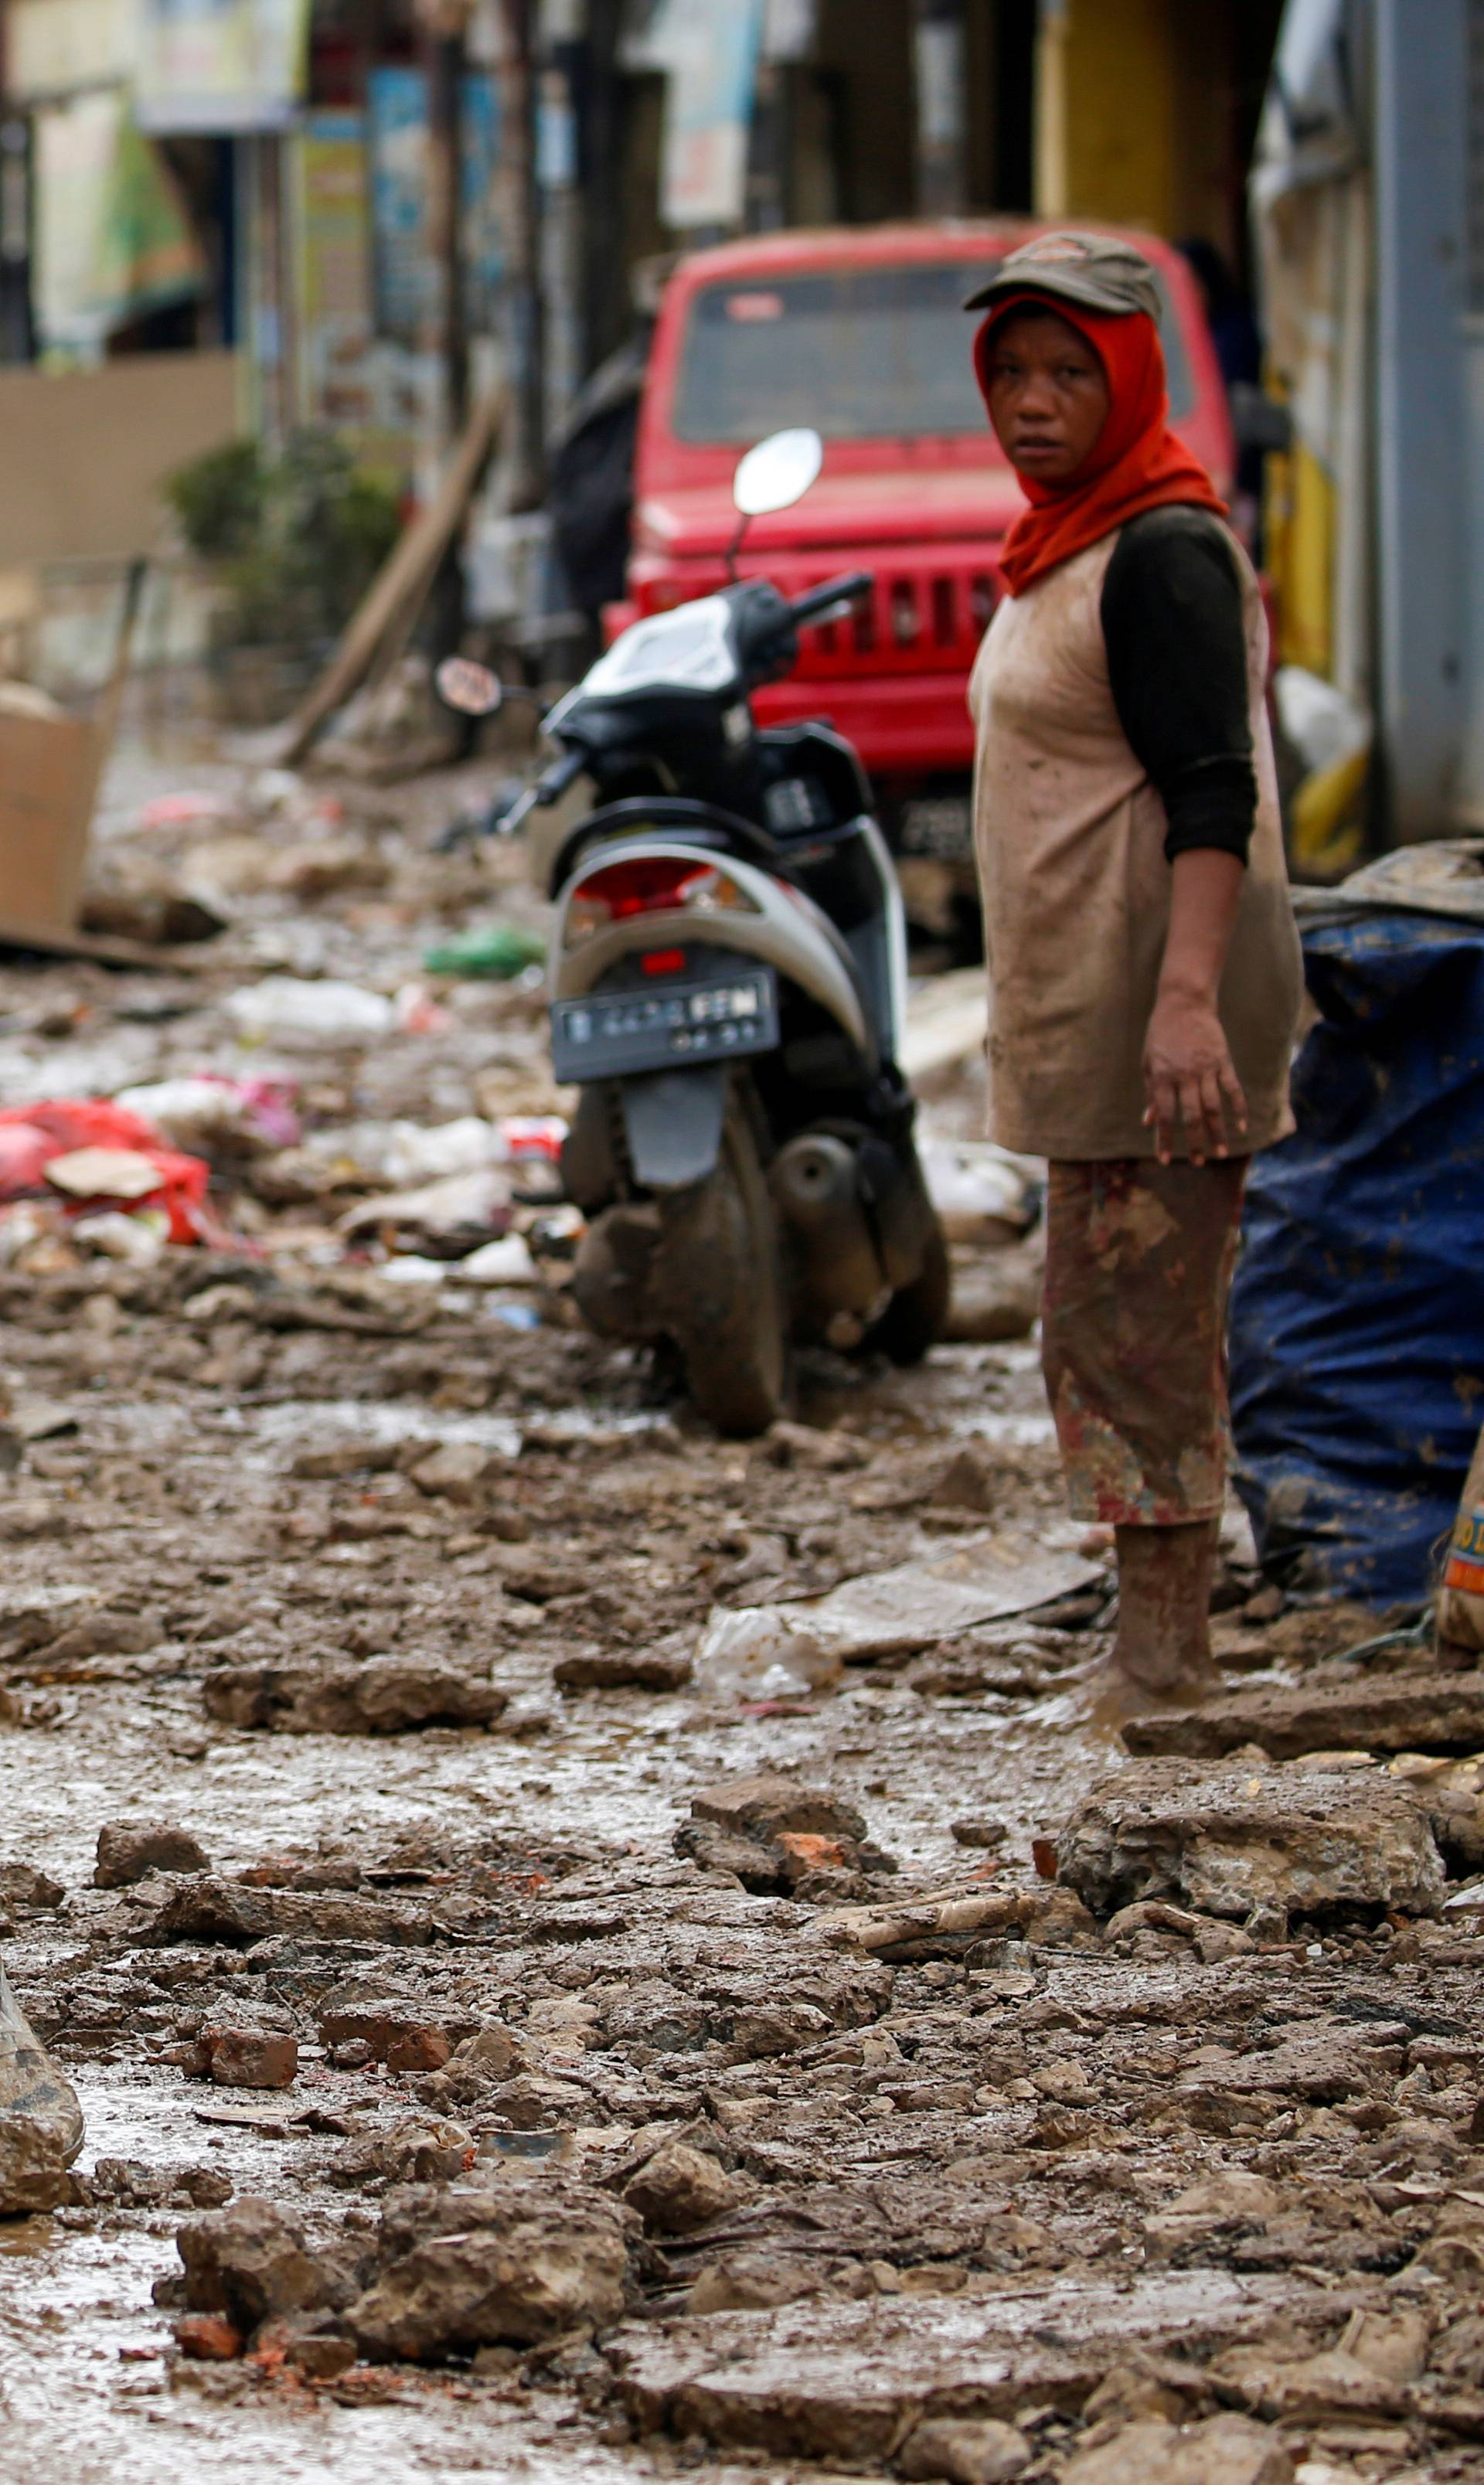 Man carrying a washing machine rides a motorbike as he collects items at a residential area affected by floods in Bekasi